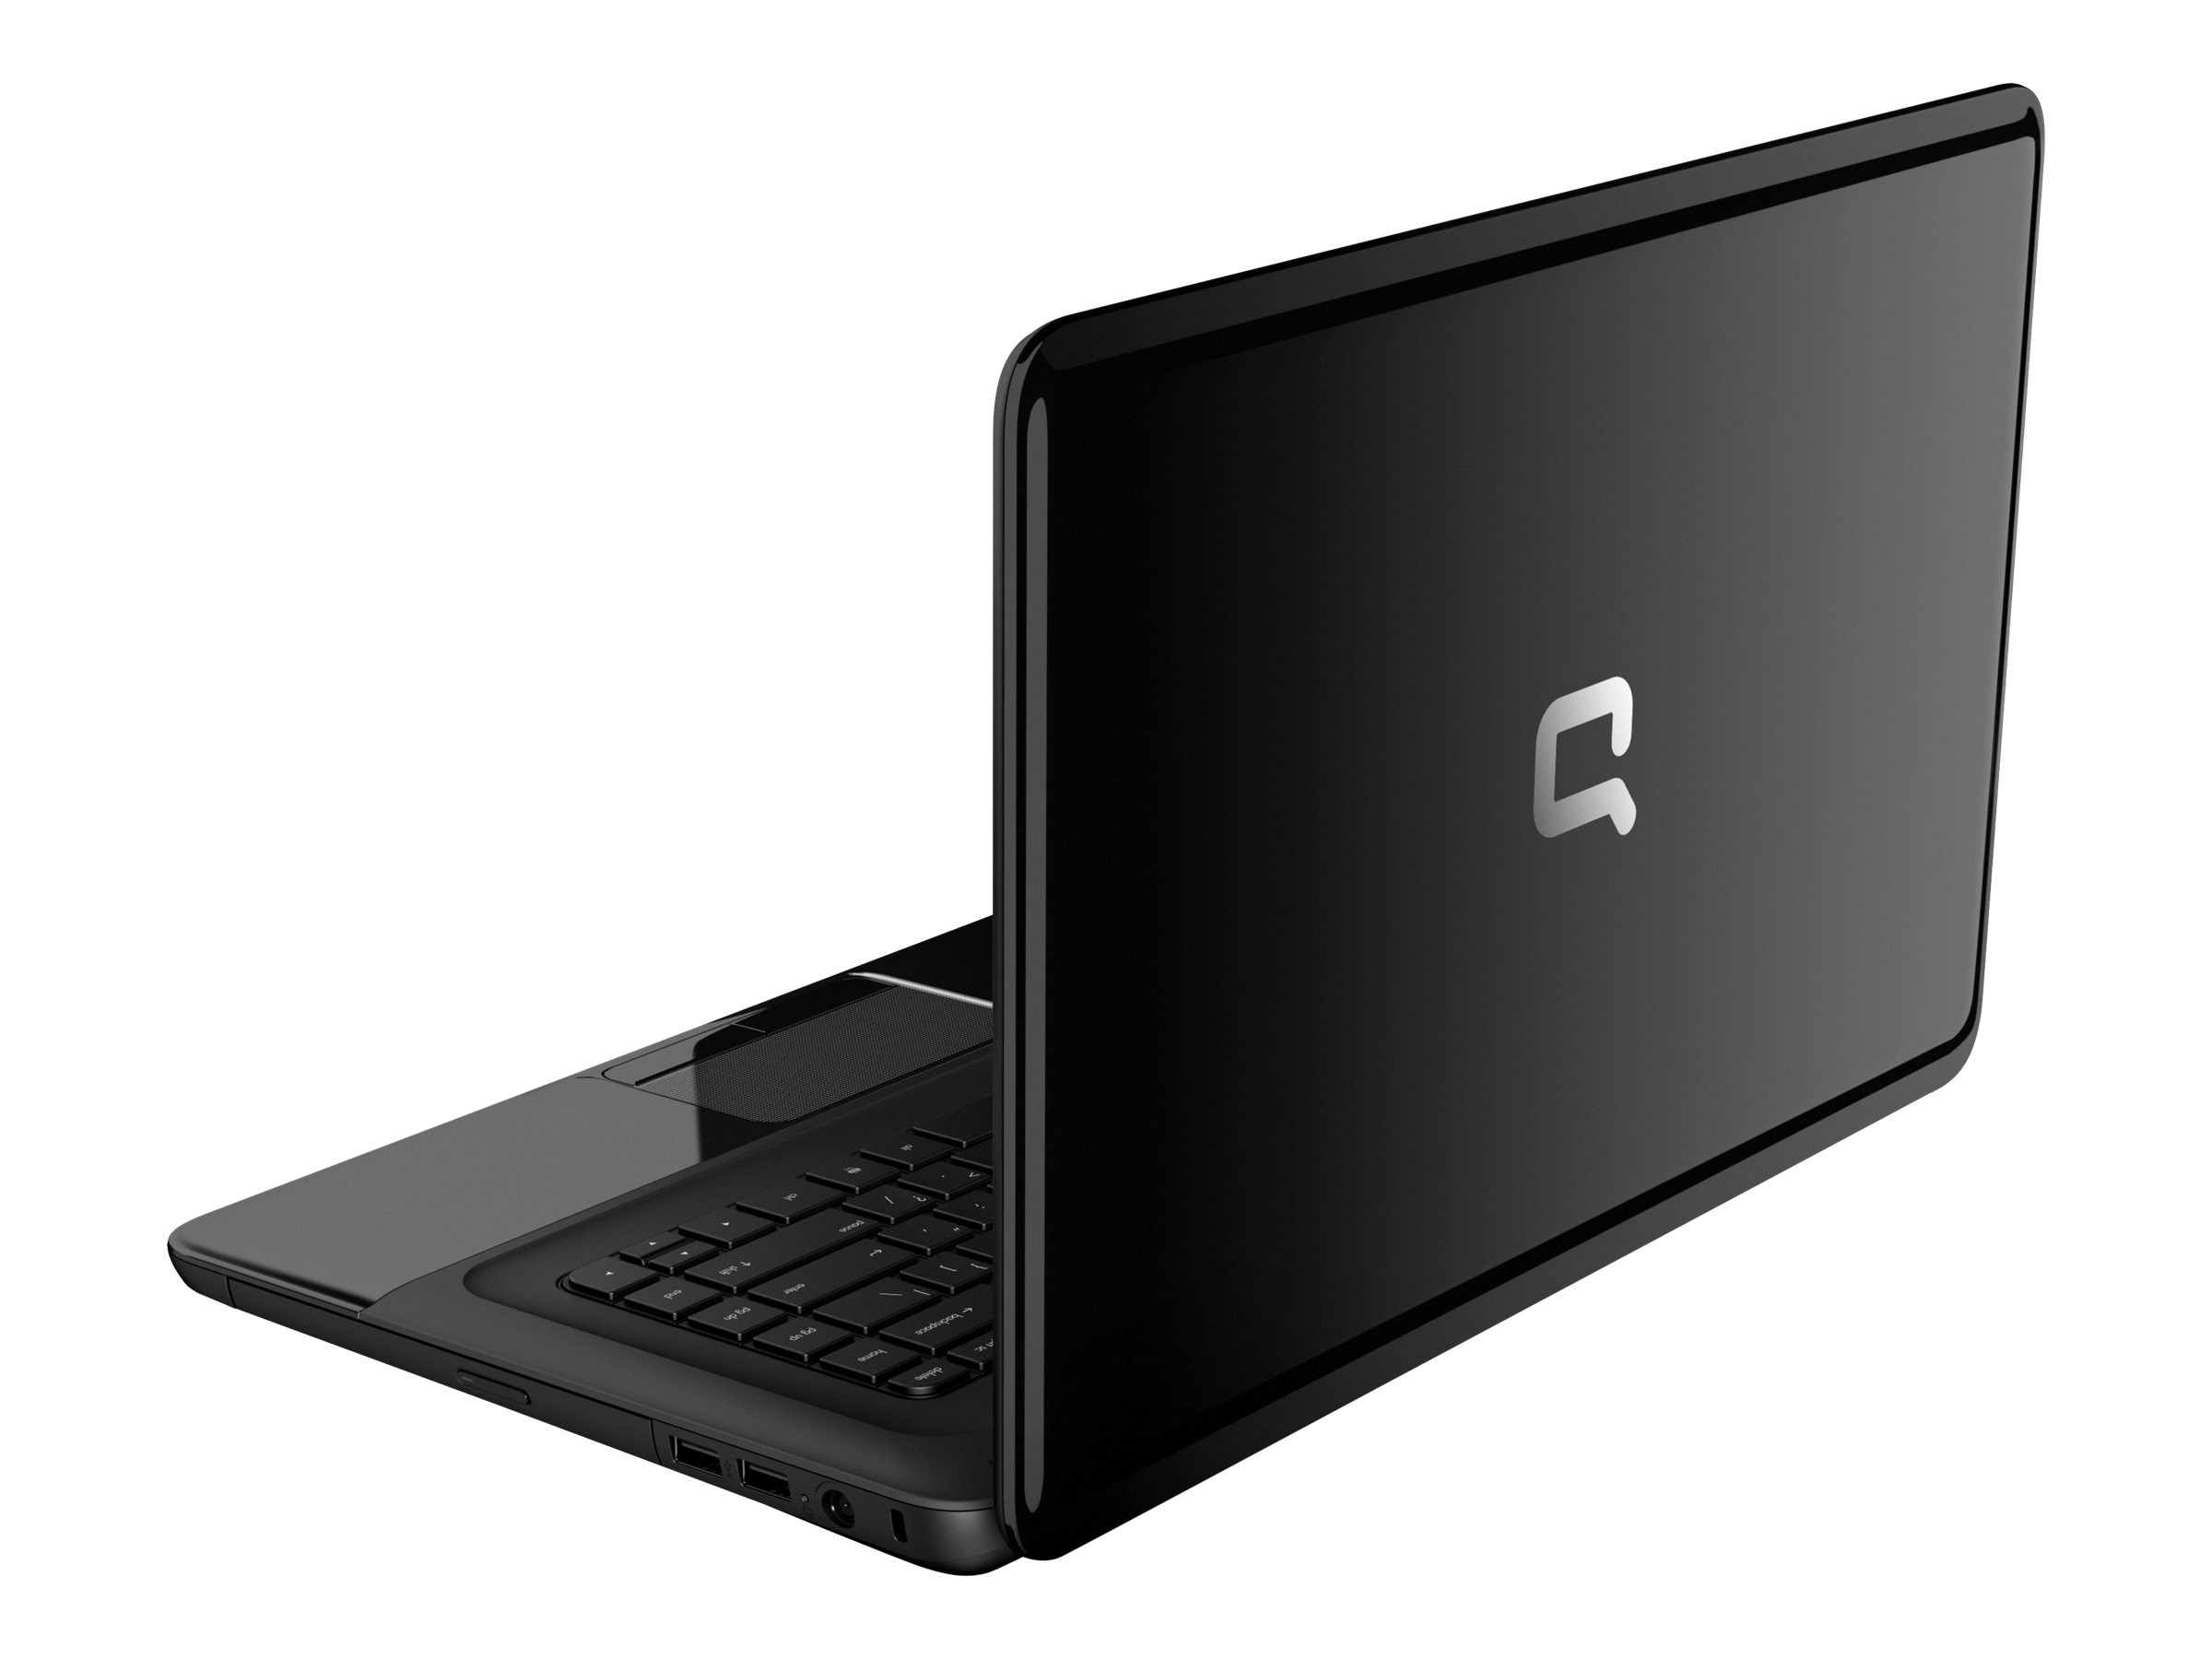 HP Presario CQ58-B10nr Notebook PC, C2N36UA#ABA